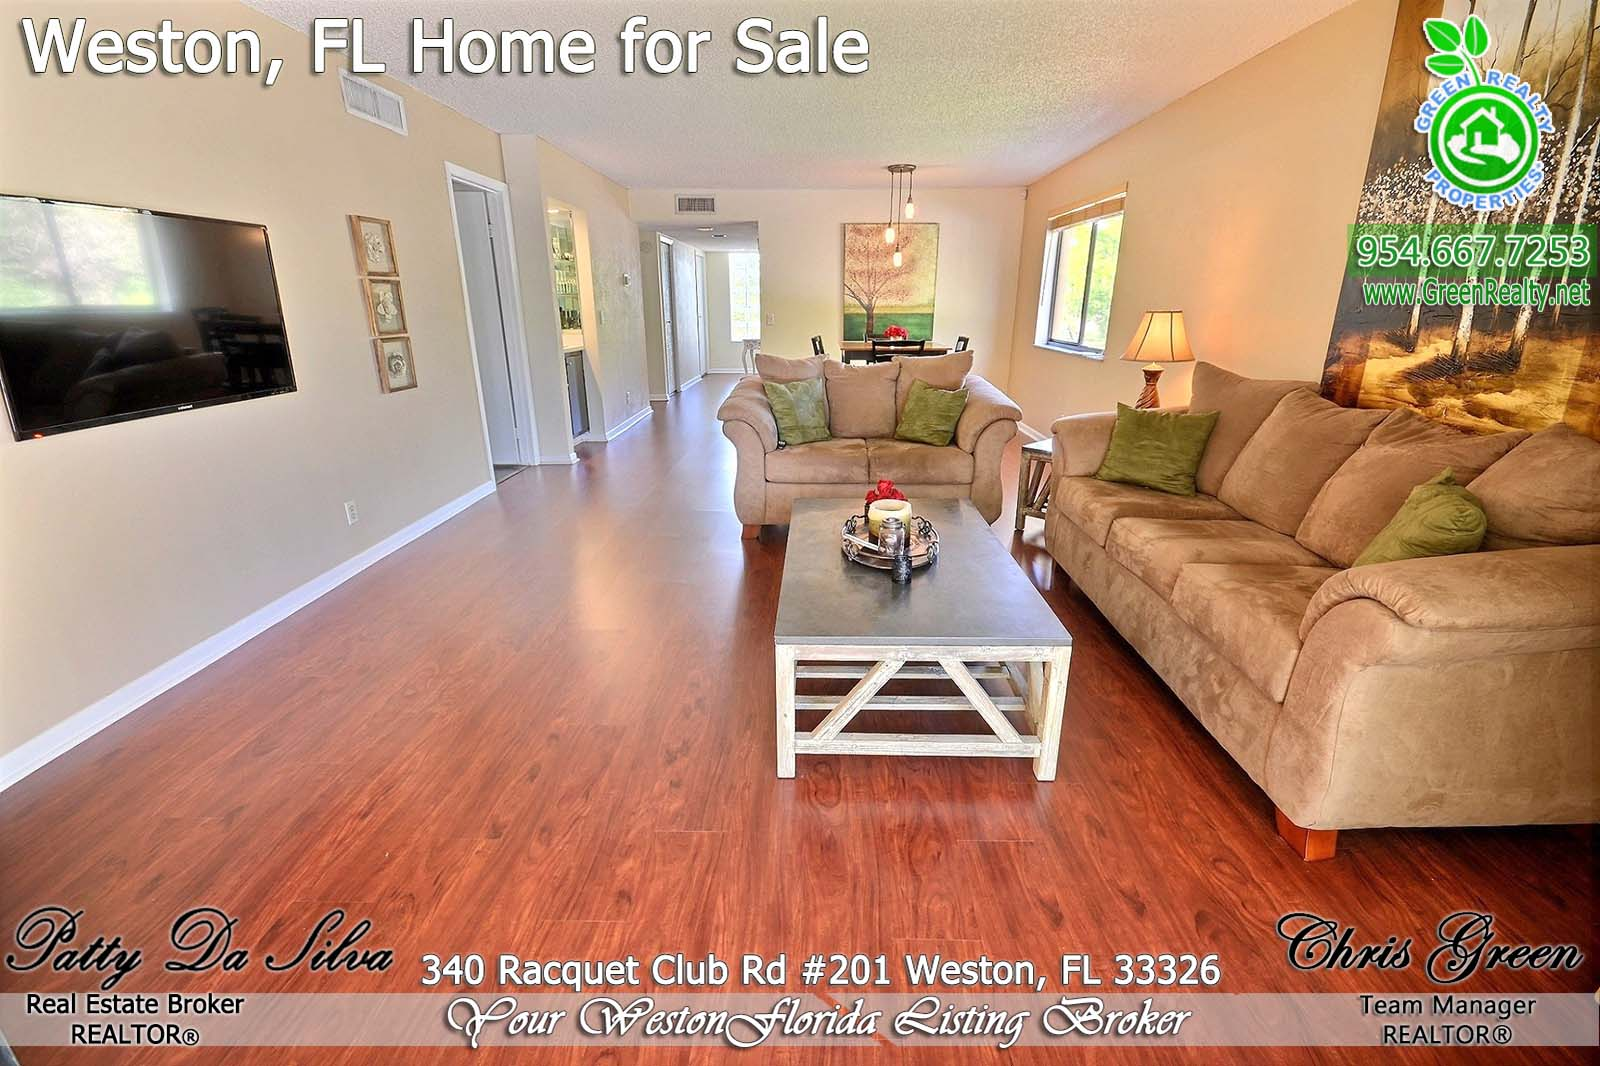 11 Patty Da Silva Sells Weston Real Estate